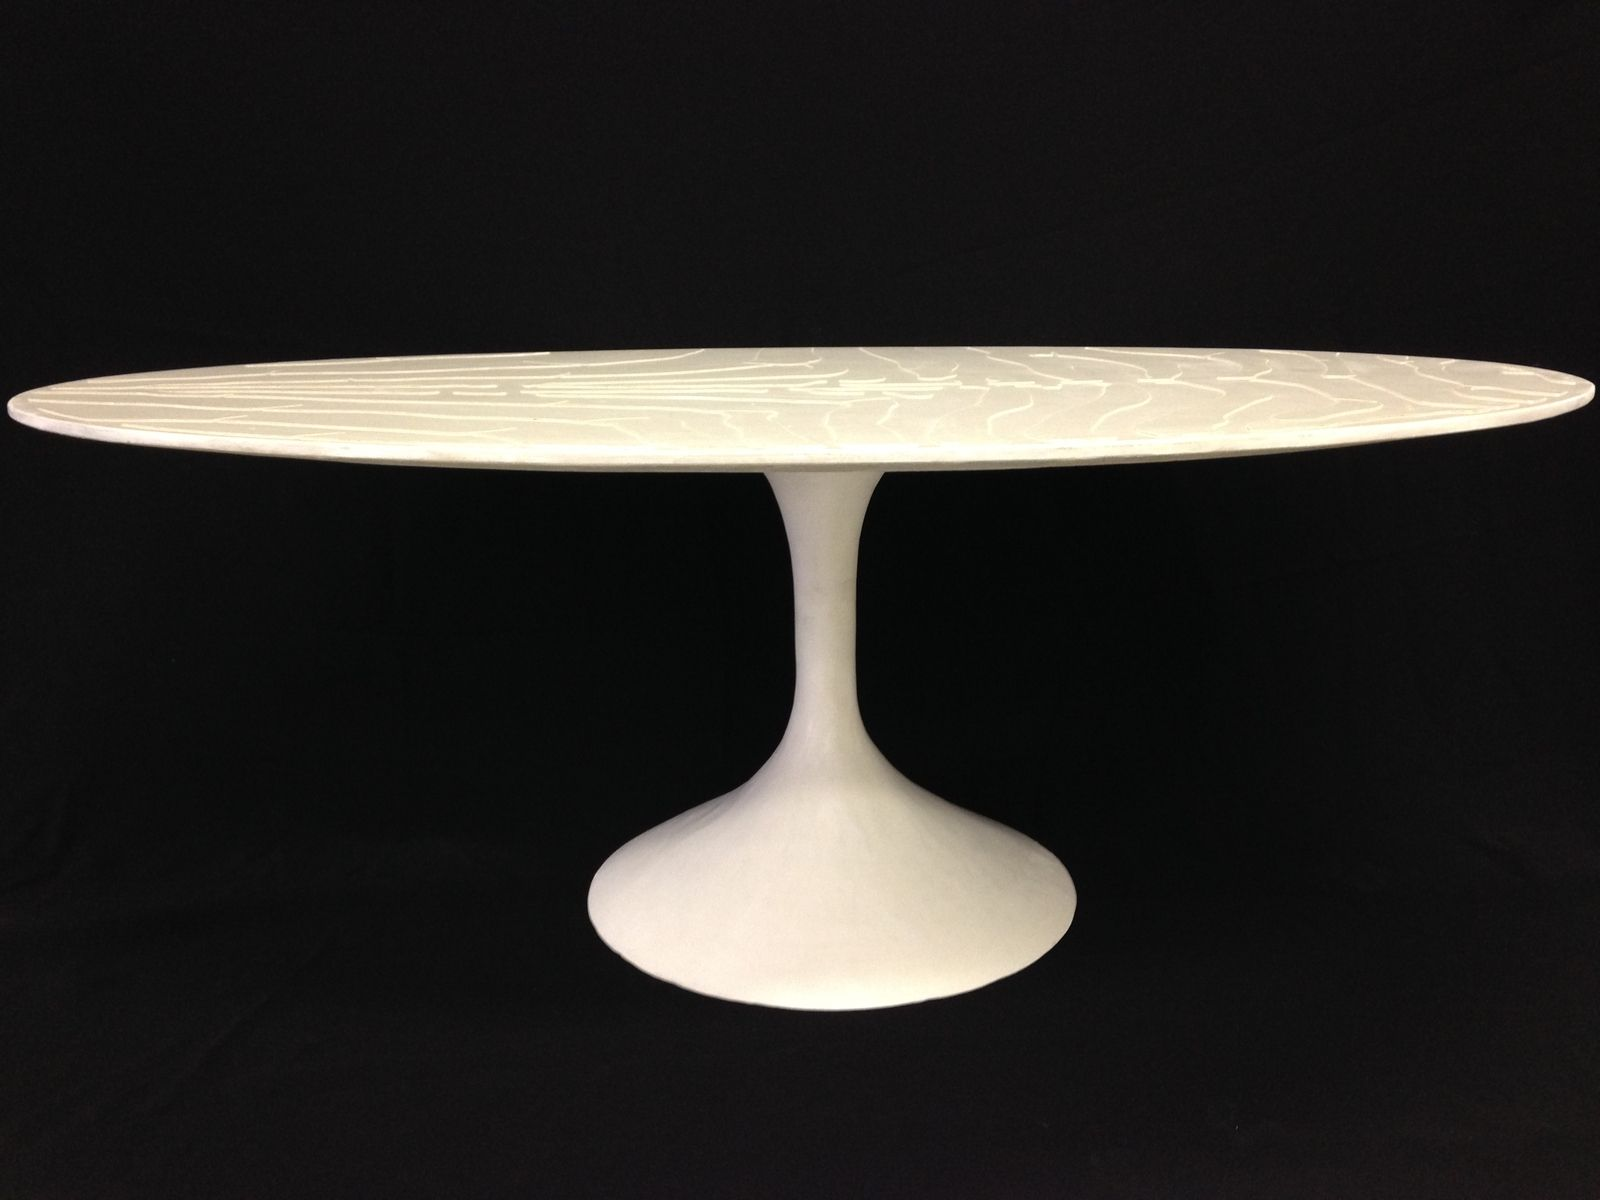 Hand Made White Concrete Coffee Table By Castings CustomMadecom - Oval concrete coffee table